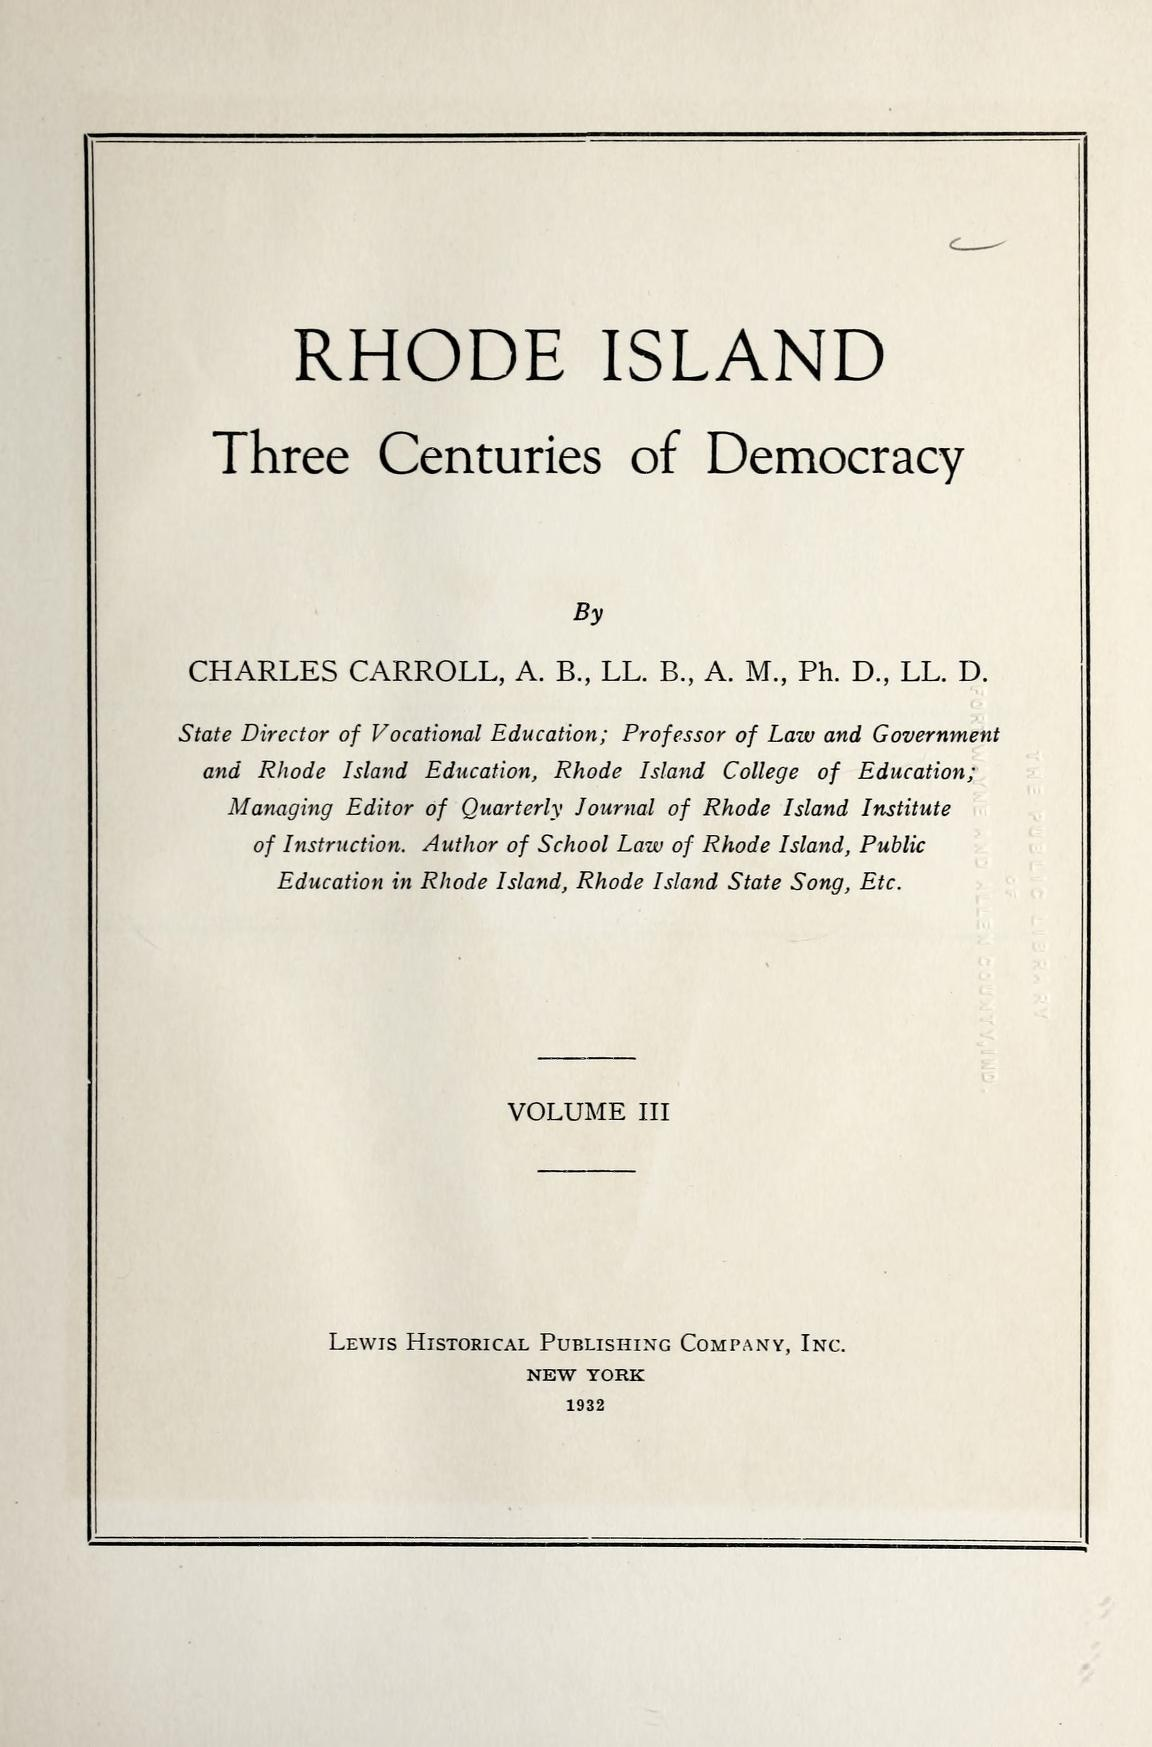 Carroll, Charles. Rhode Island: Three Centuries of Democracy, vol 3 of 4